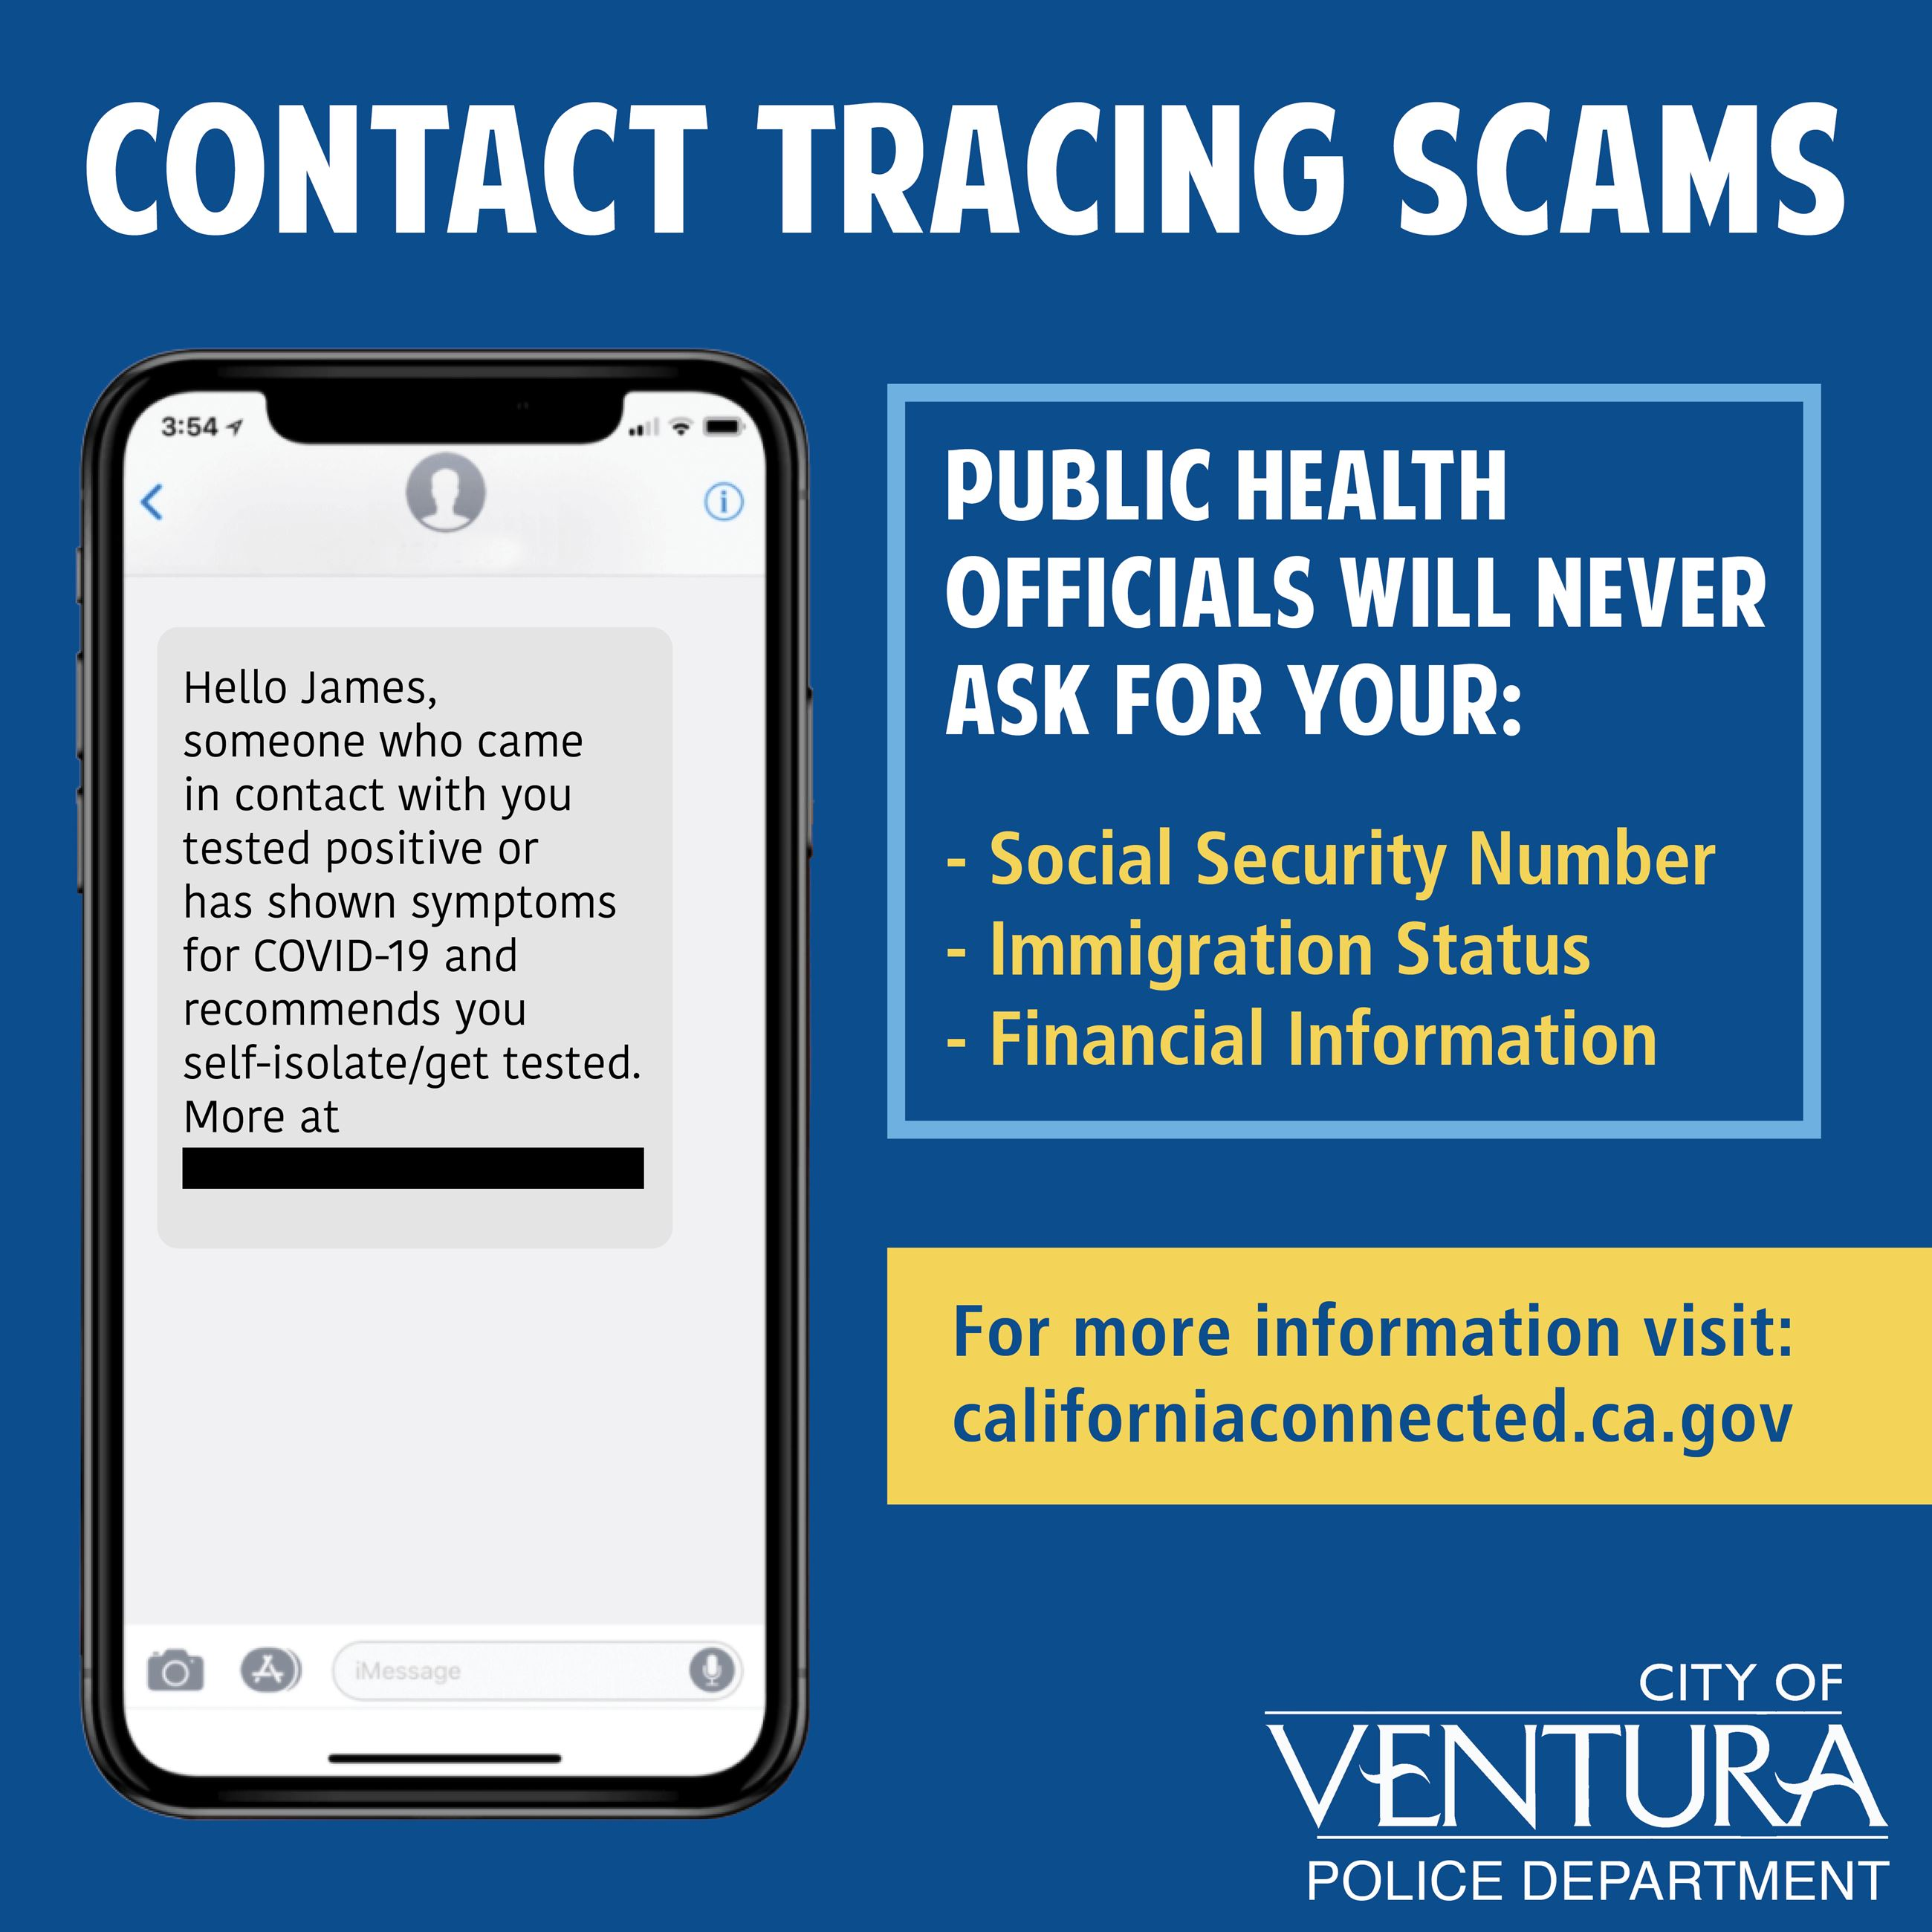 Contact Tracing Scam Alert Opens in new window